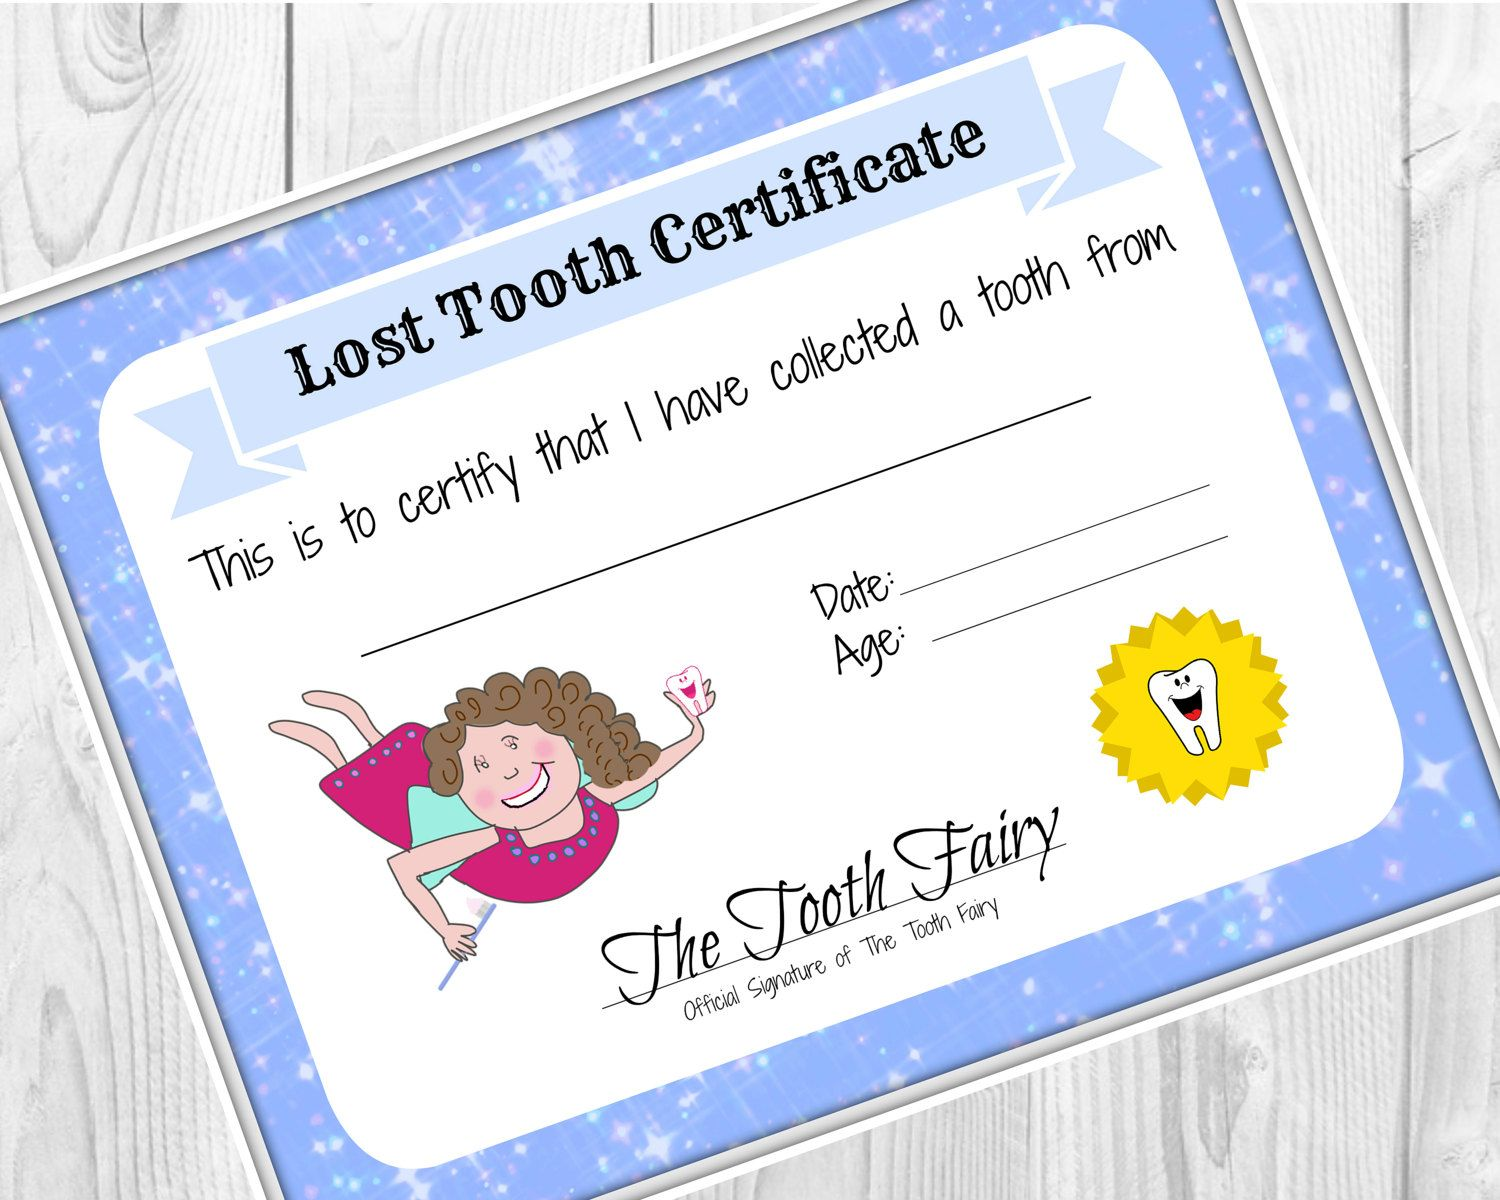 Girls first haircut certificate baby first haircut photo tooth fairy certificate lost tooth child baby milestone letter from tooth fairy xflitez Gallery